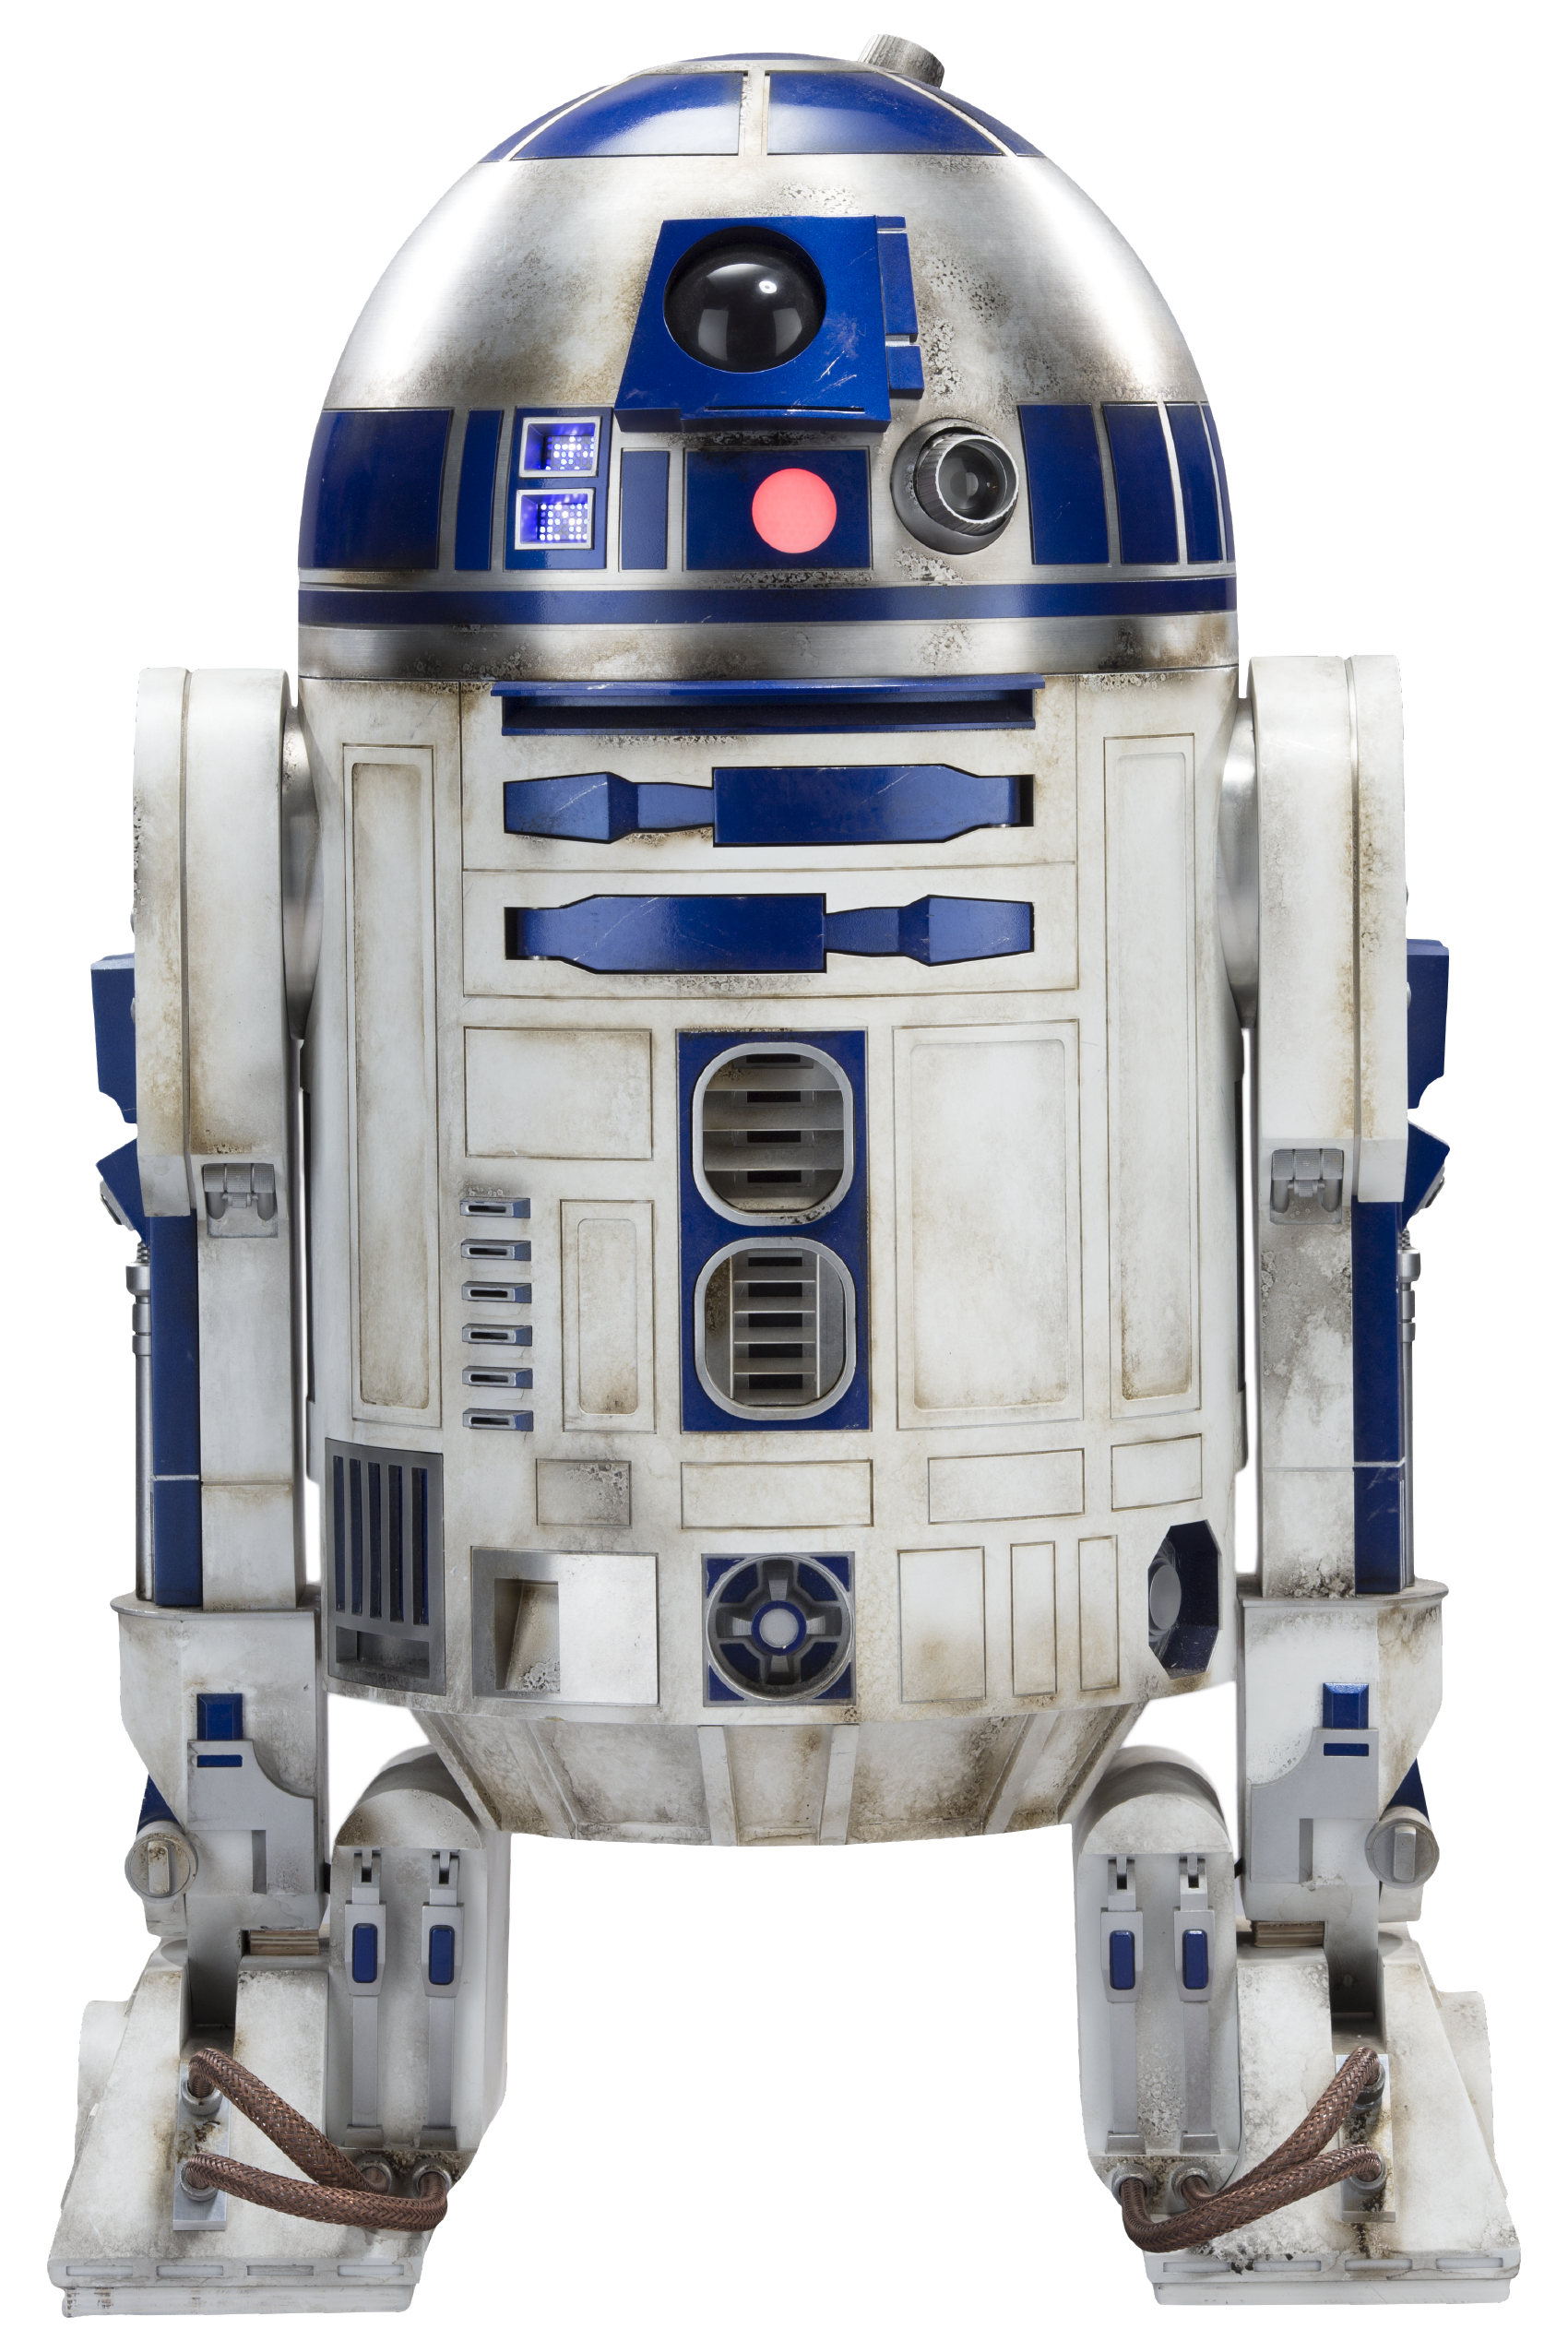 George Lucas' Early Star Wars Plan Had R2-D2 Telling The Story